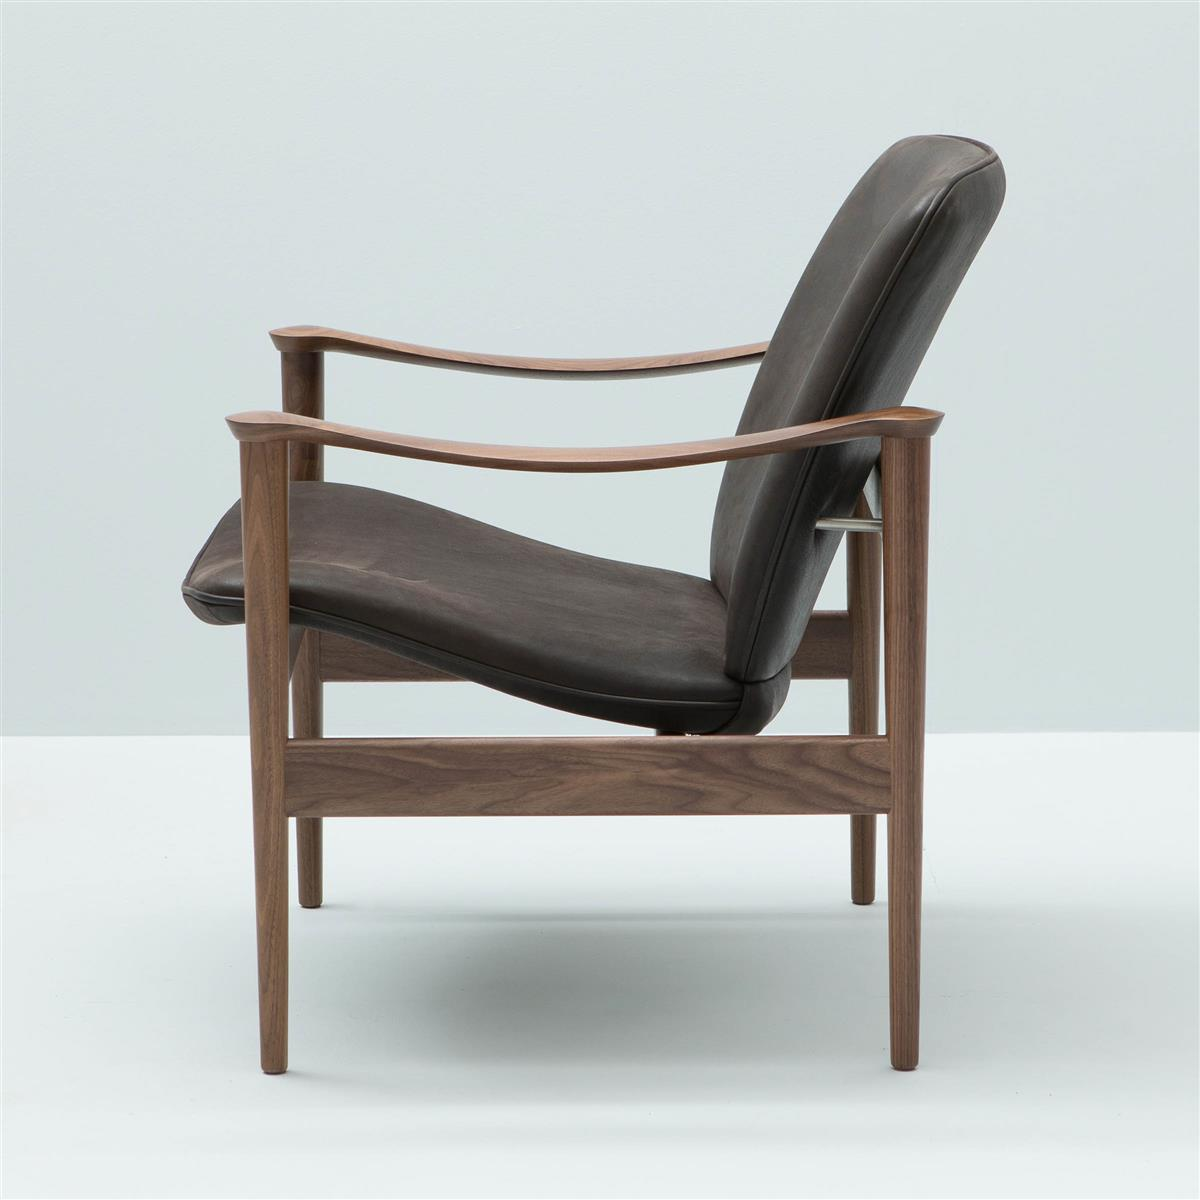 Modell 711 Lounge Chair. Valnøtt lakkert. Saddle 06 Totem lær.